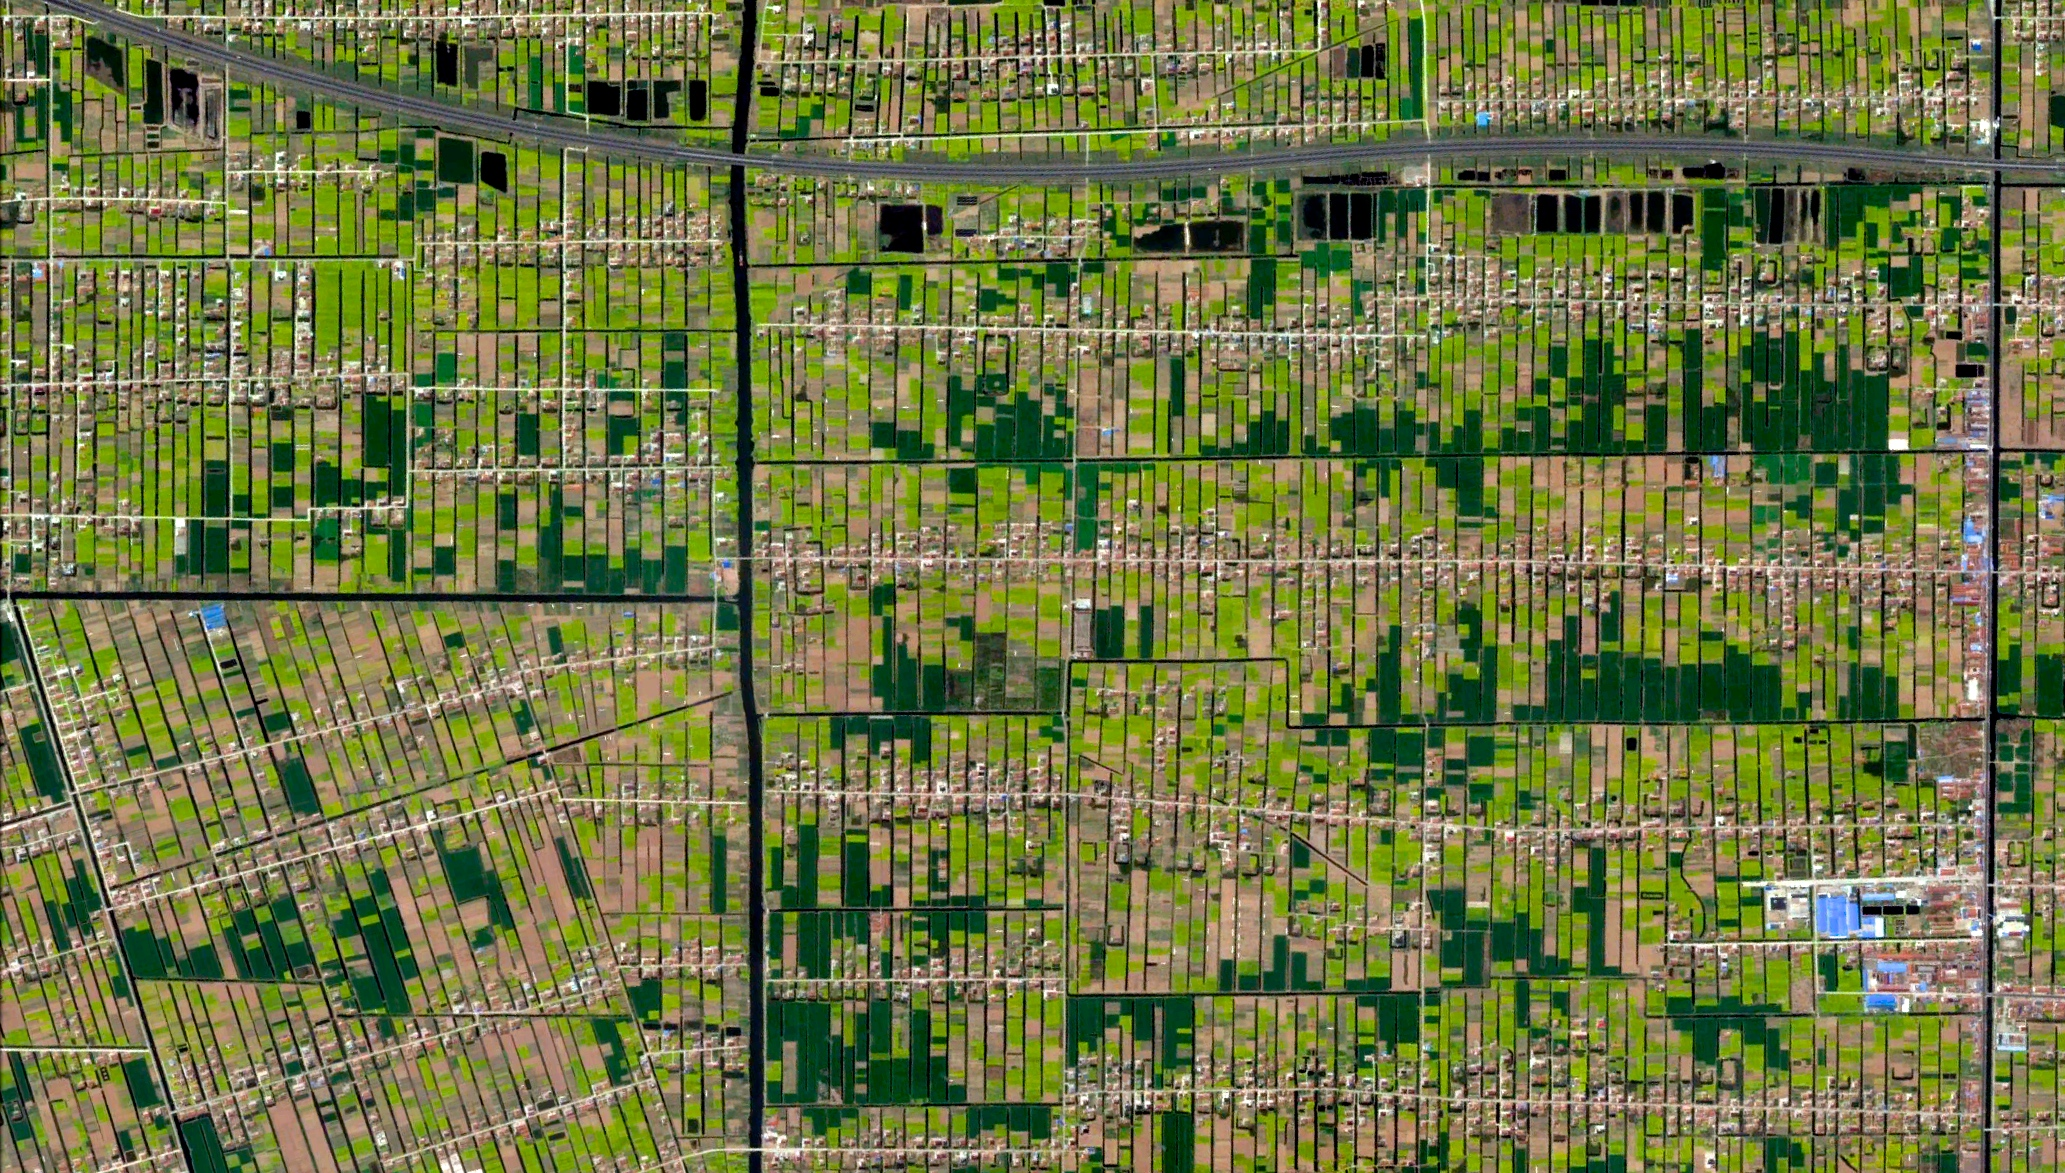 5/11/2015  Residential / agricultural development   Jiulongzhen, Anhui, China   31.887639391°, 121.646788019°      Individual homes and agricultural lots stretch across the landscape of Jiulongzhen in the Anhui Province of China.